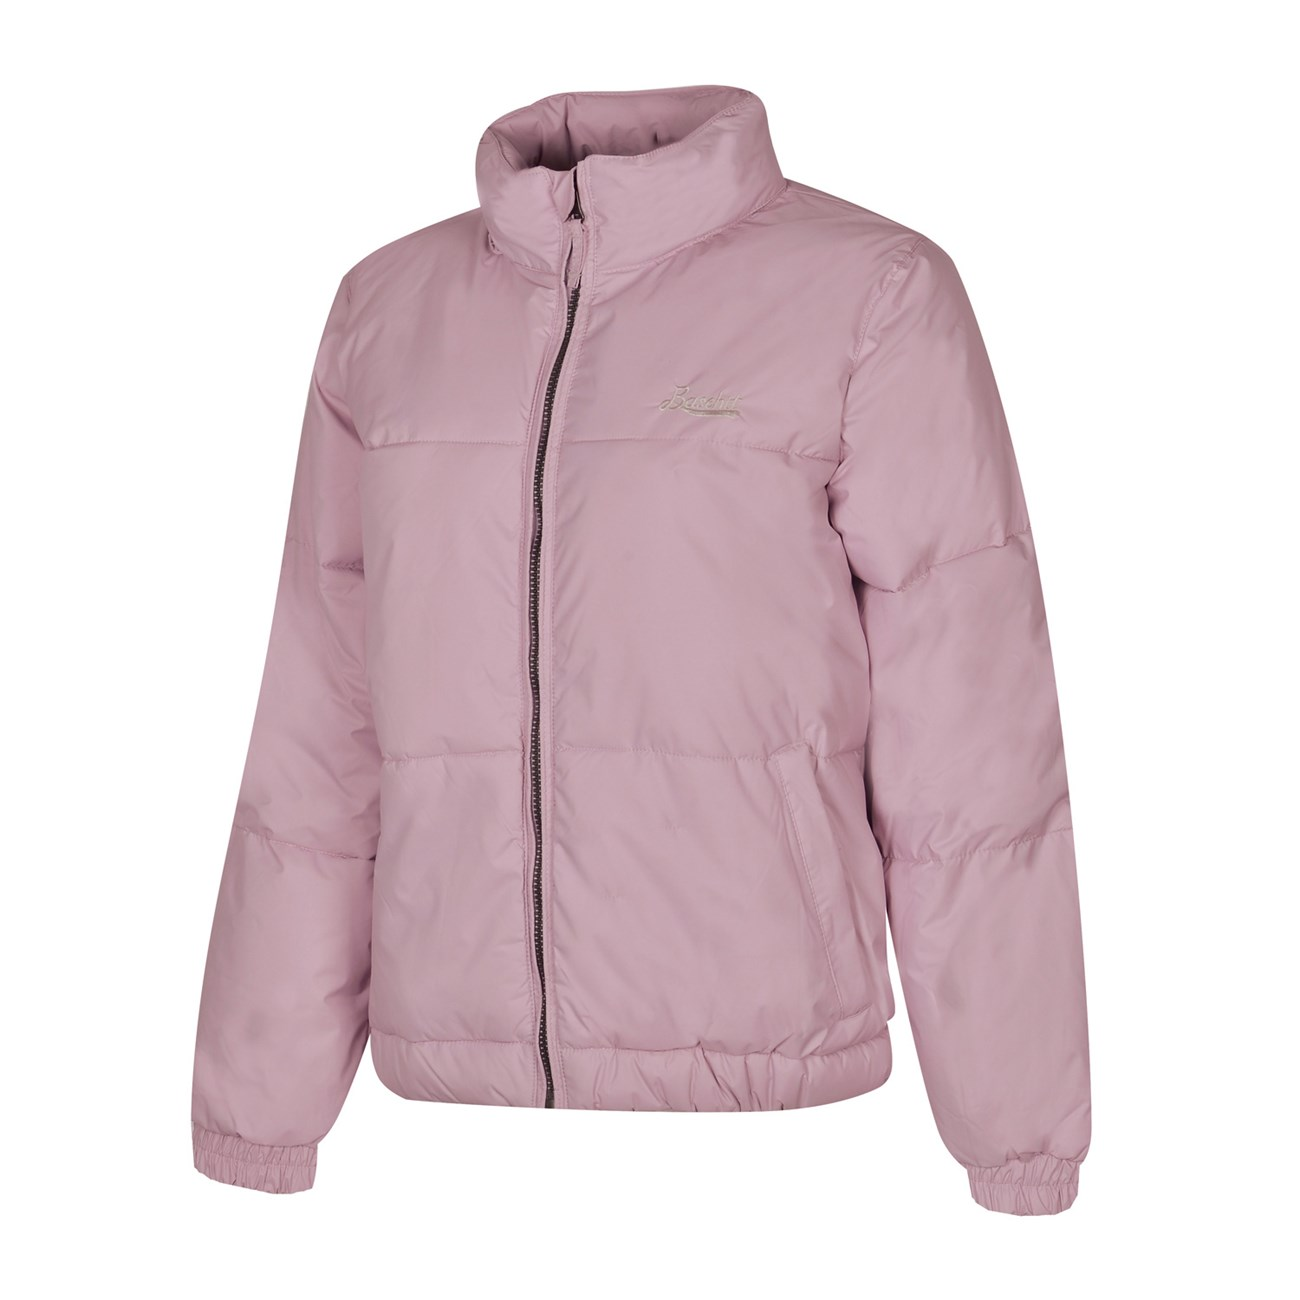 5c728ff679f6 BASEHIT Women's P.P. Down Jkt with Roll-in Hood < Γυναικεία Μπουφάν ...